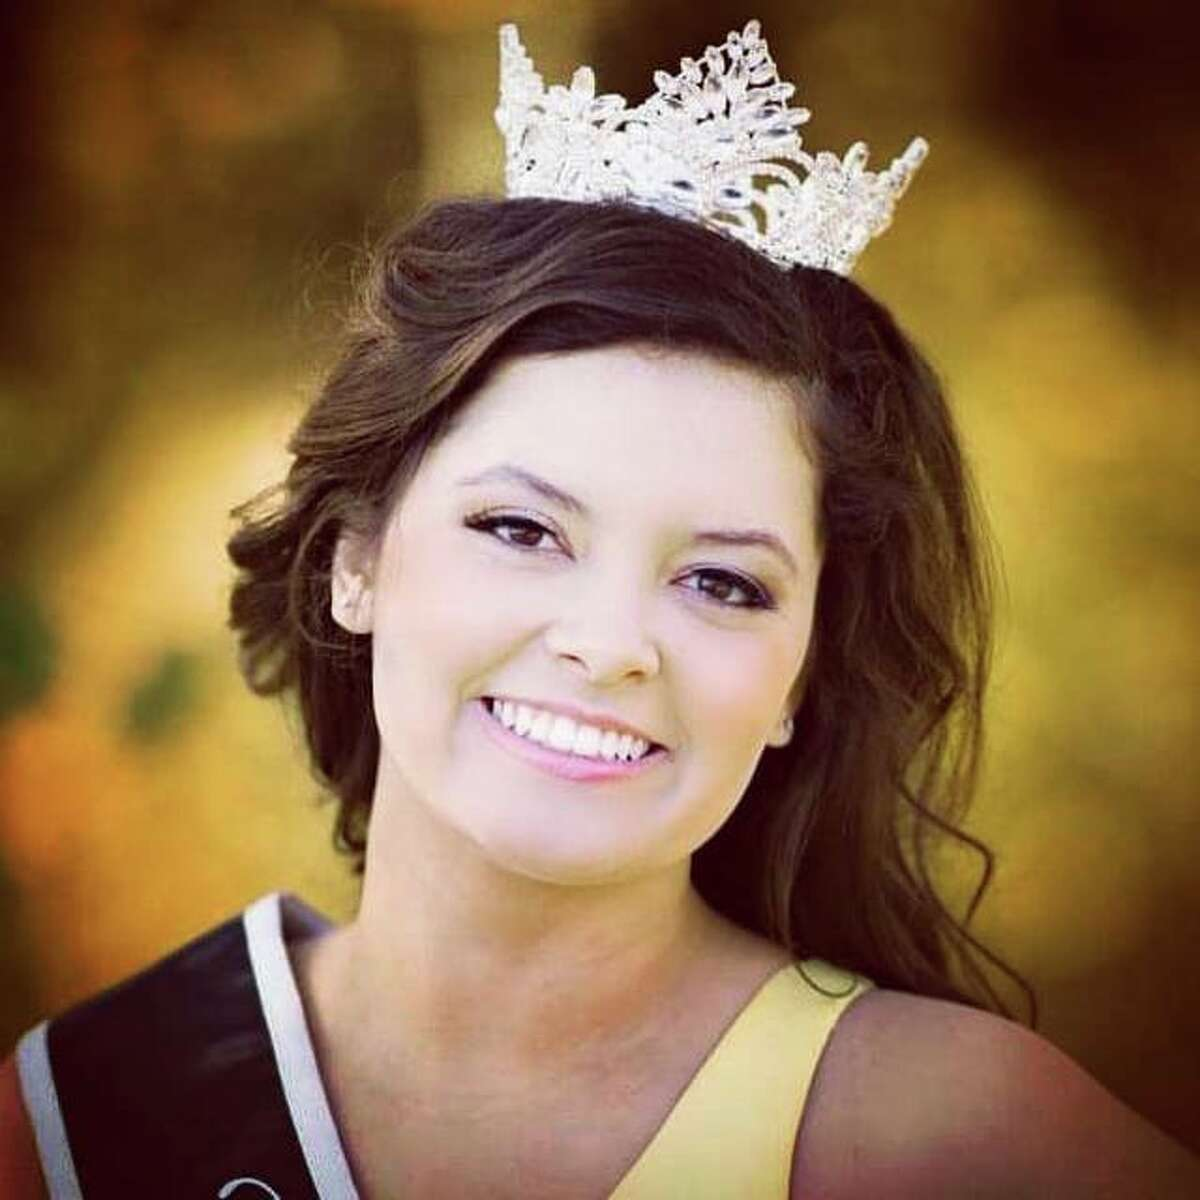 Jersey County Fair Queen Sara Lamar, who won the 2019 pageant and stayed on for the 2020-2021 year, will crown this year's queen at the pageant that starts at 7 p.m. Wednesday at the Jersey County Fair.